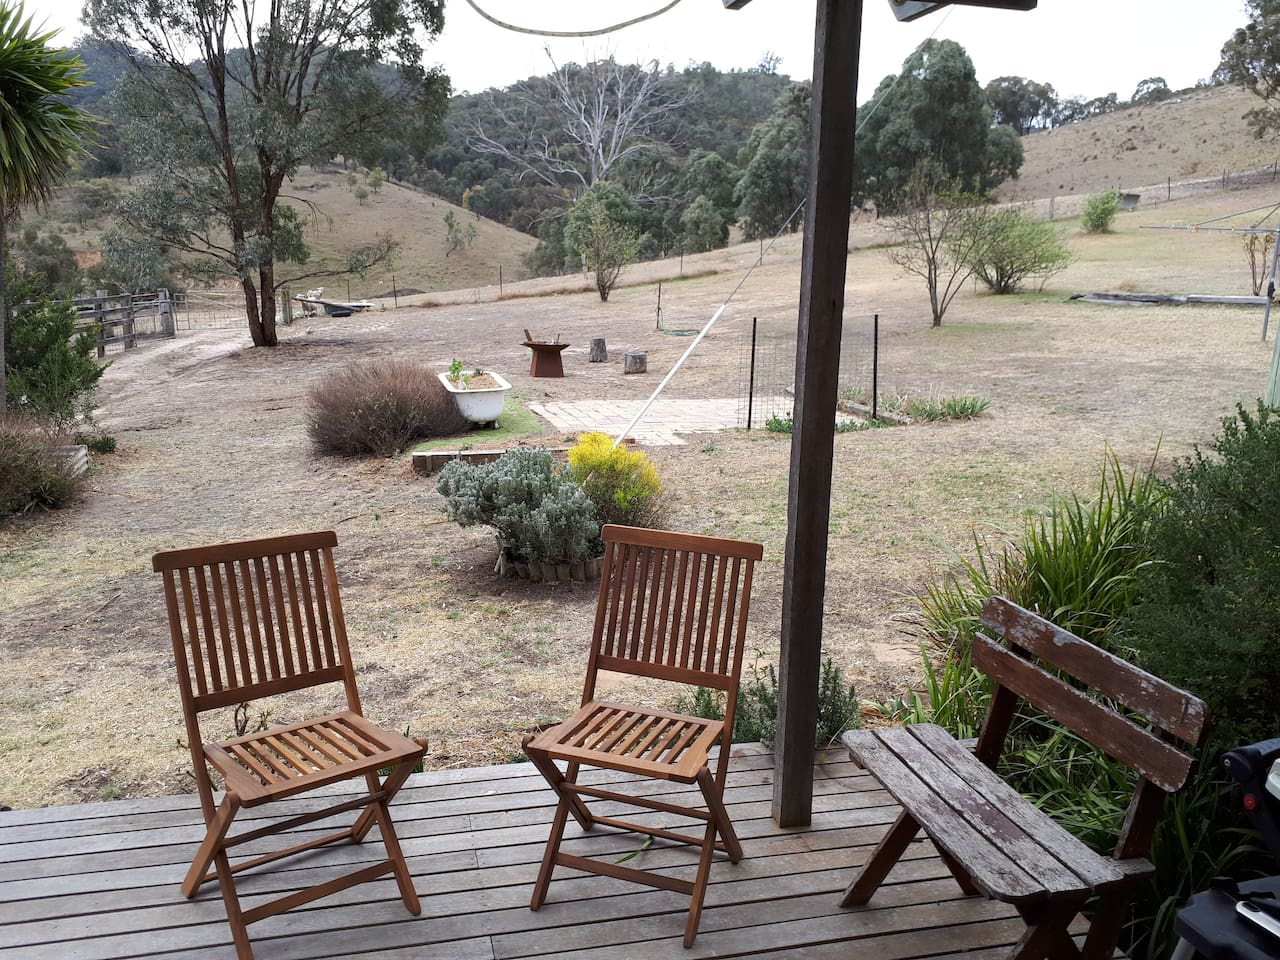 Enjoy mornings and afternoons on the sunny north facing deck and use the fire pit - fire restrictions permitting